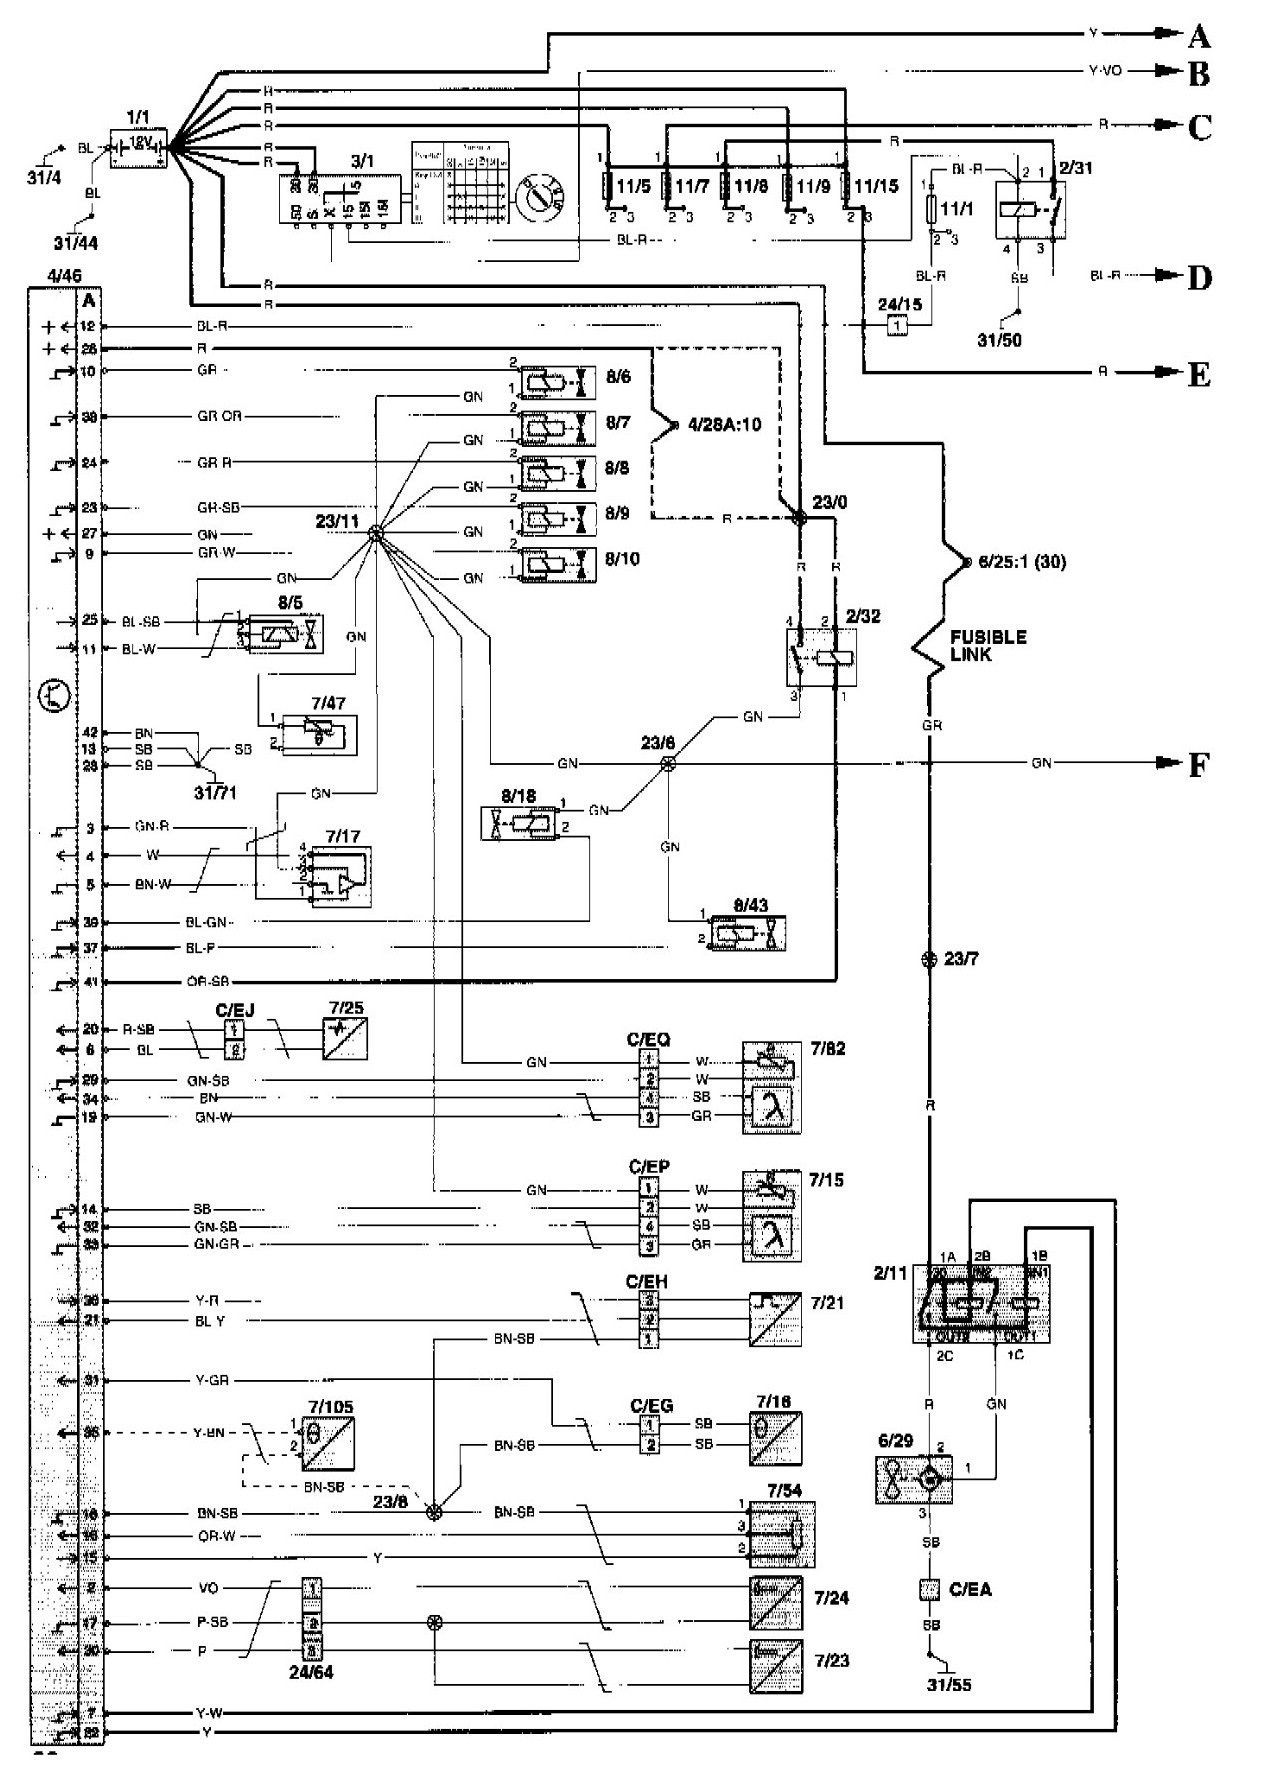 DIAGRAM] Volvo S70 V70 C70 Coupe 1998 Electrical Wiring Diagram Instant  FULL Version HD Quality Diagram Instant - DIAGRAMOFADNS.SORRISOPERILSUDAN.IT | Volvo Xc70 Trailer Wiring Diagram |  | Diagram Database - sorrisoperilsudan.it